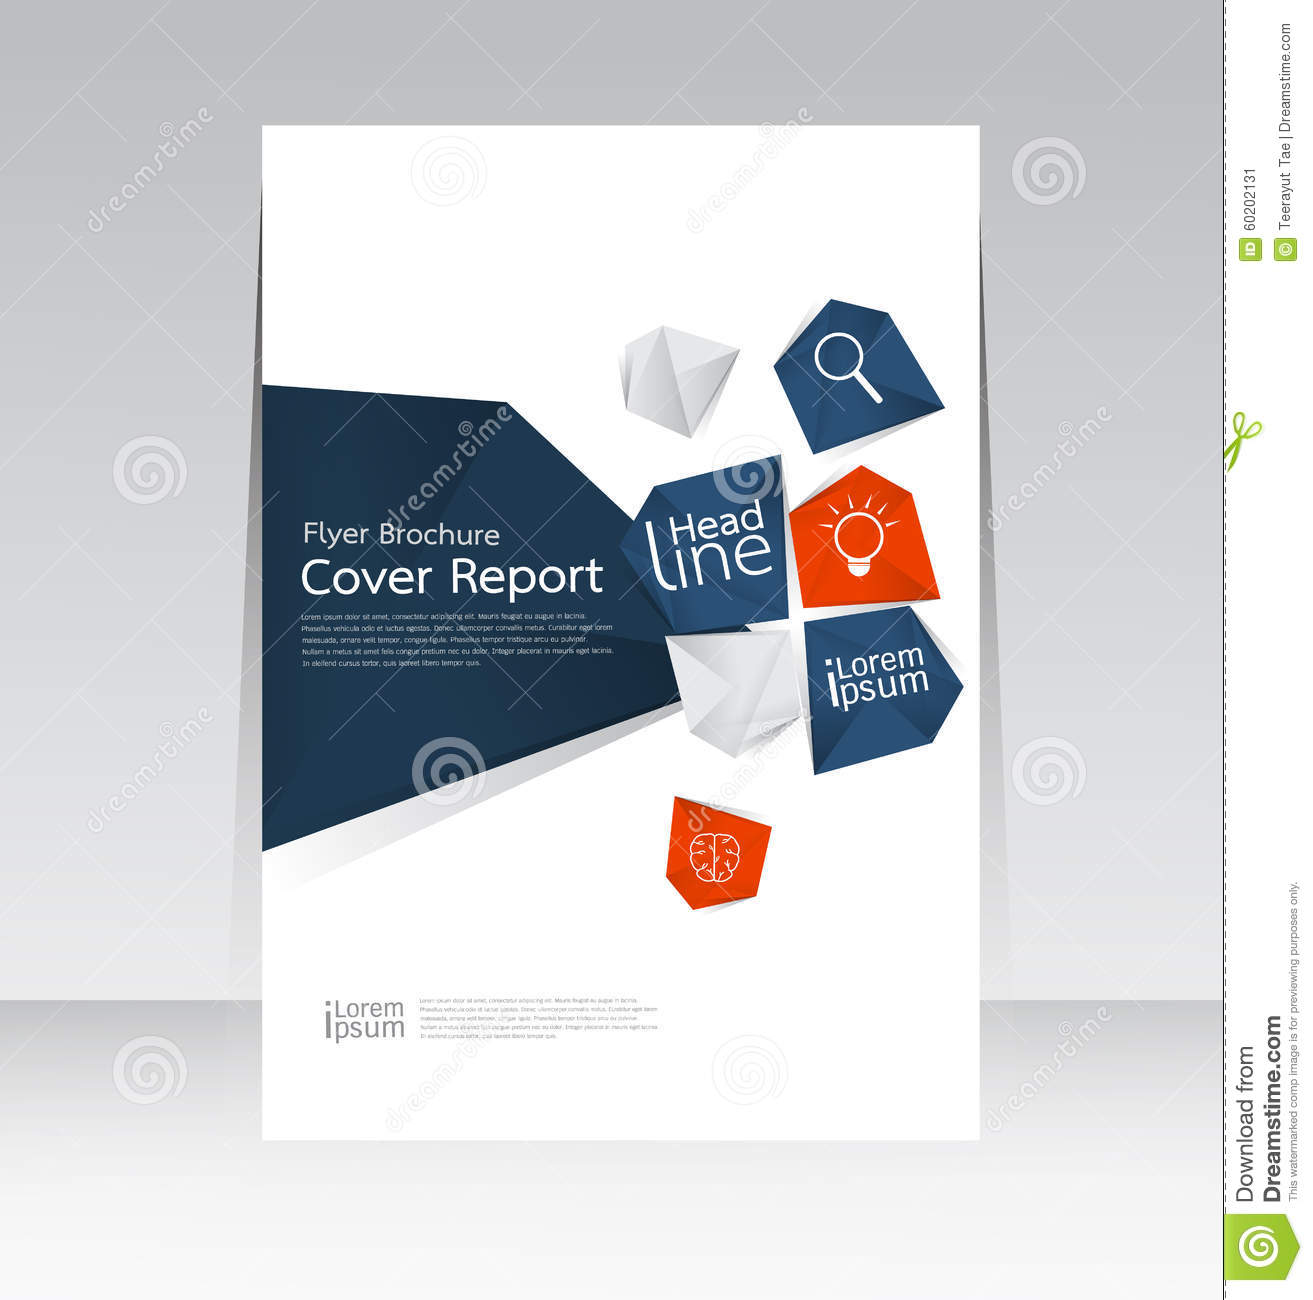 vector design for cover report annual brochure flyer